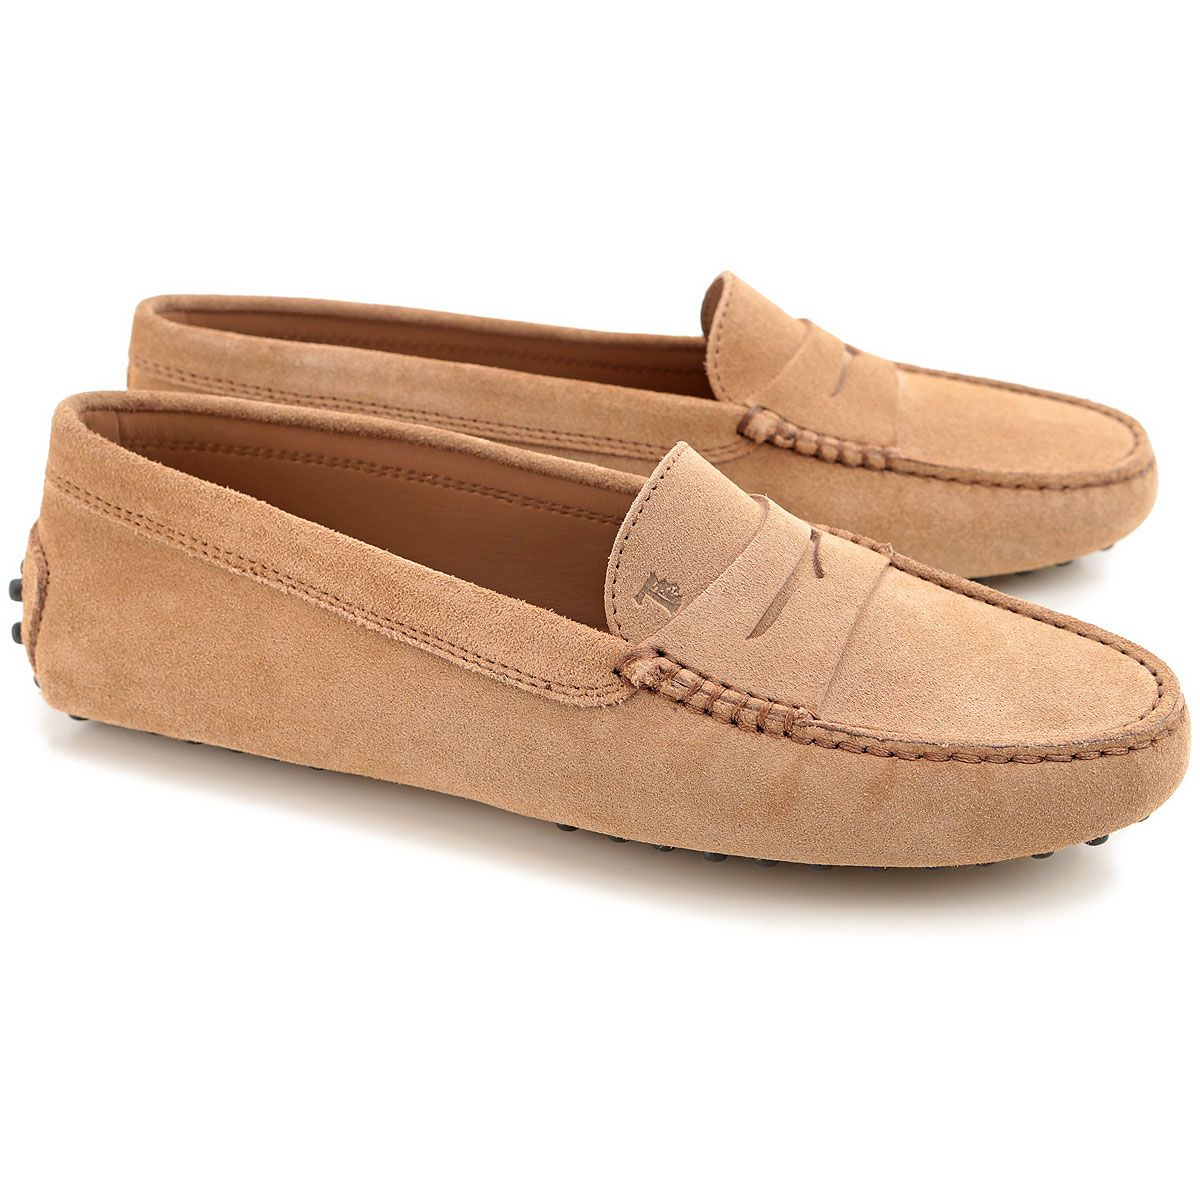 premier taux df1de e5029 Tod's Shoes for Women and Loafers from the Current ...